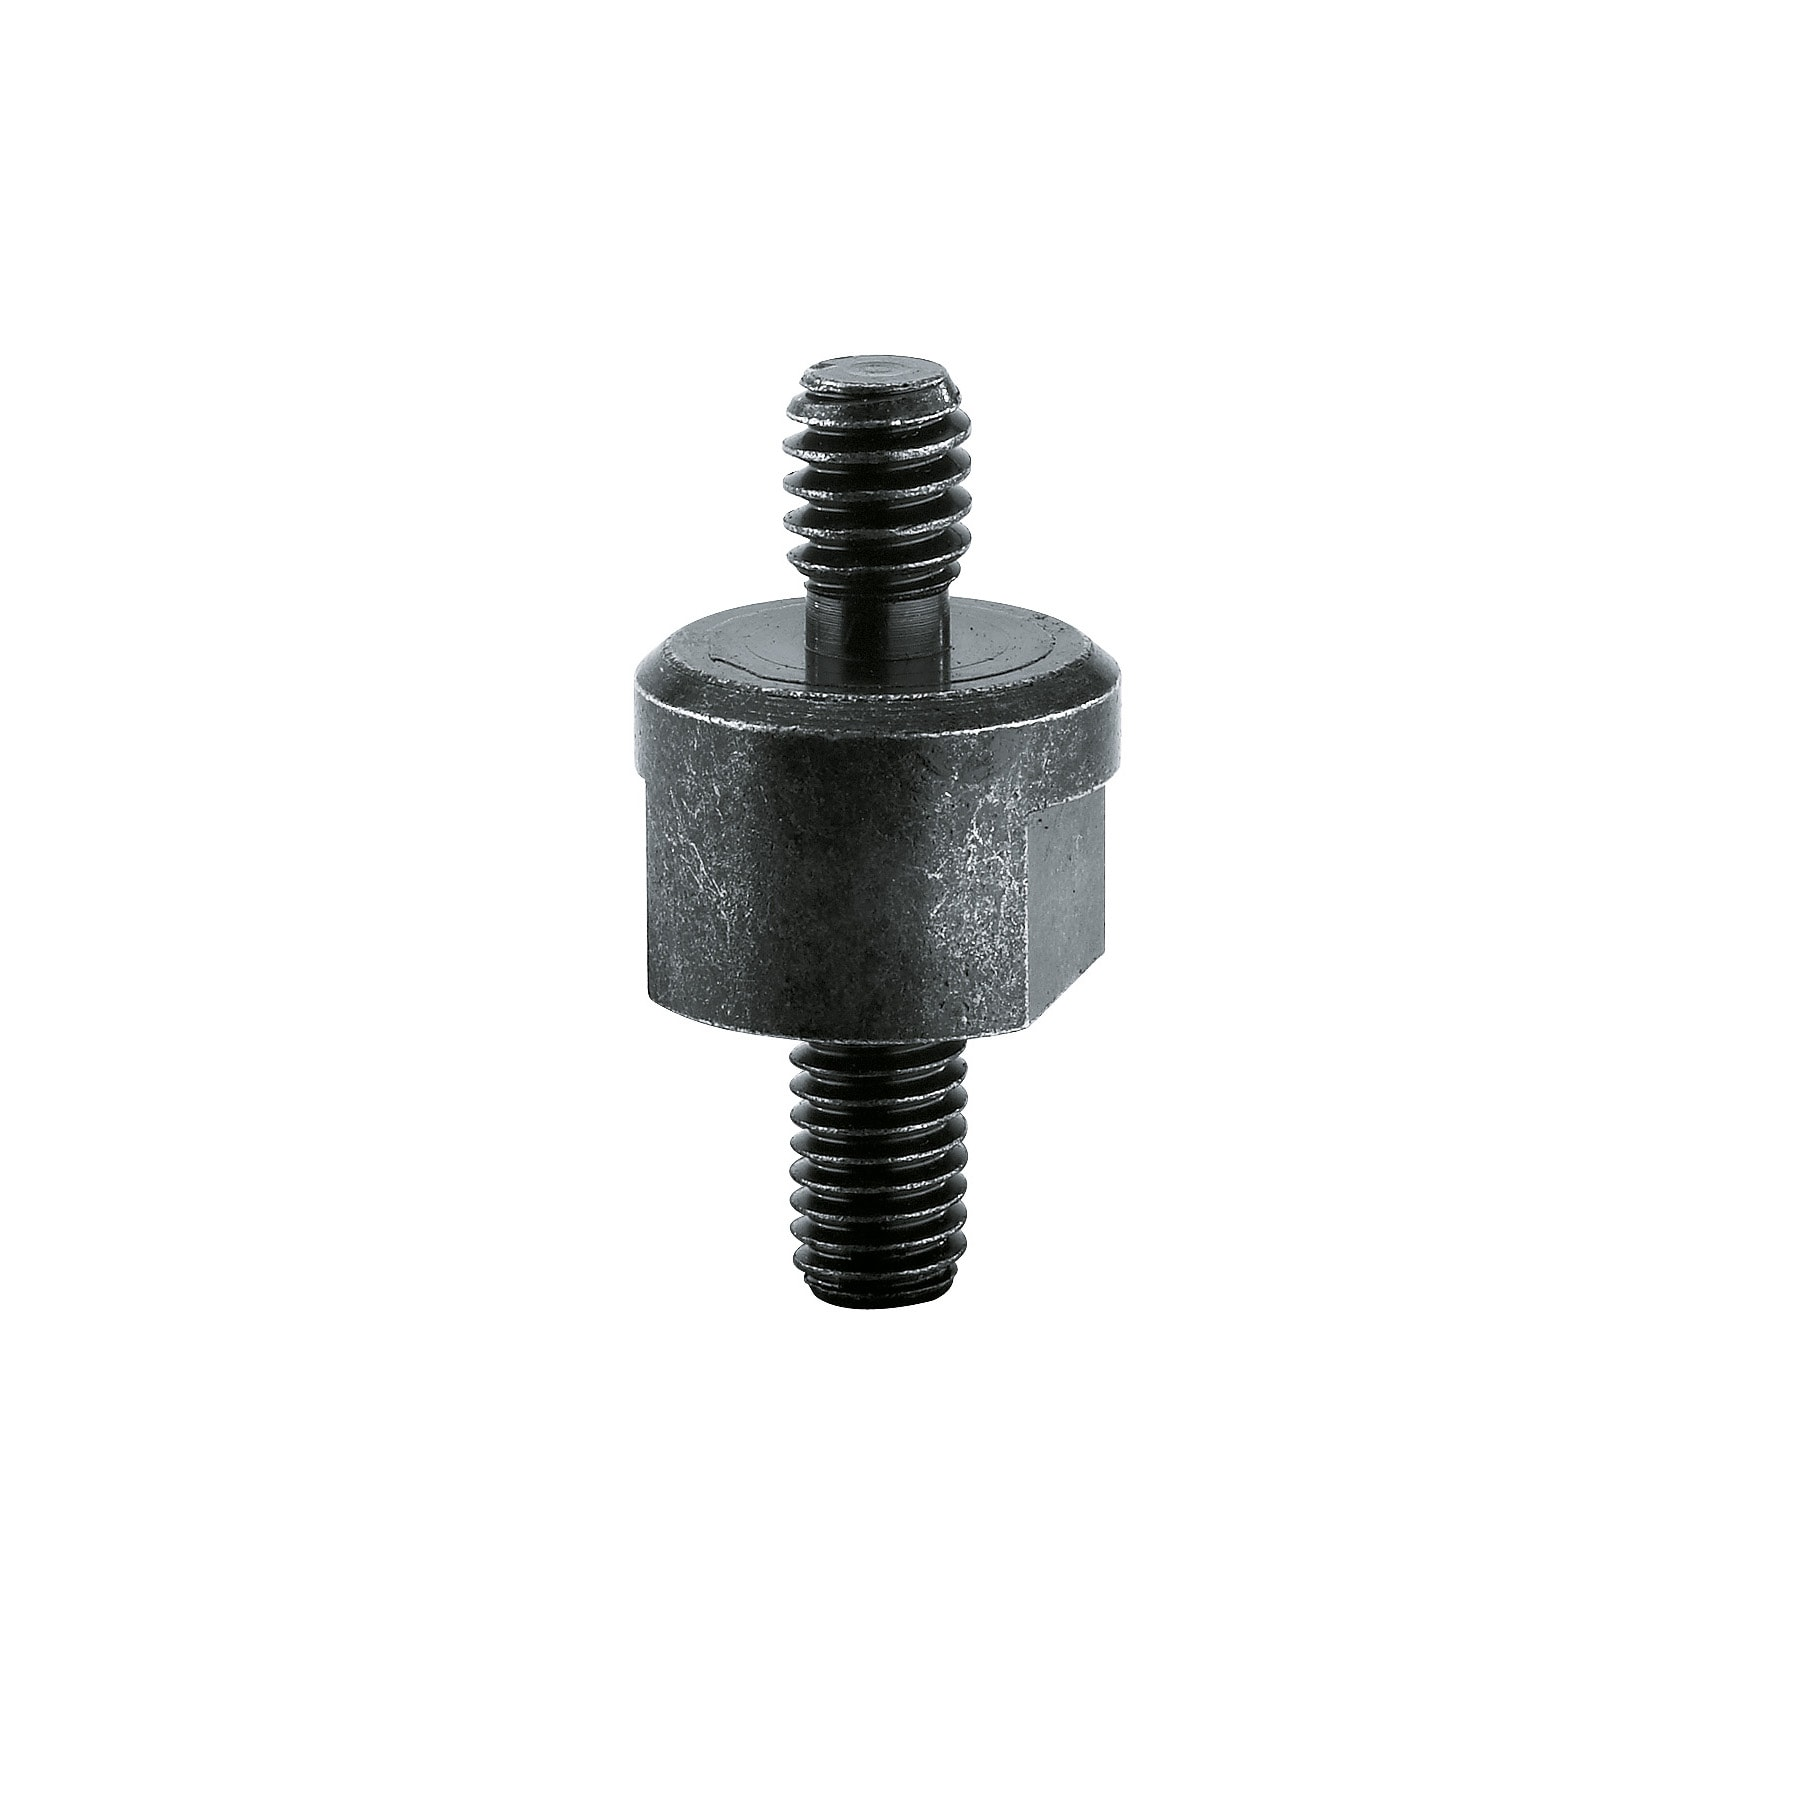 KM23721 - Threaded bolt